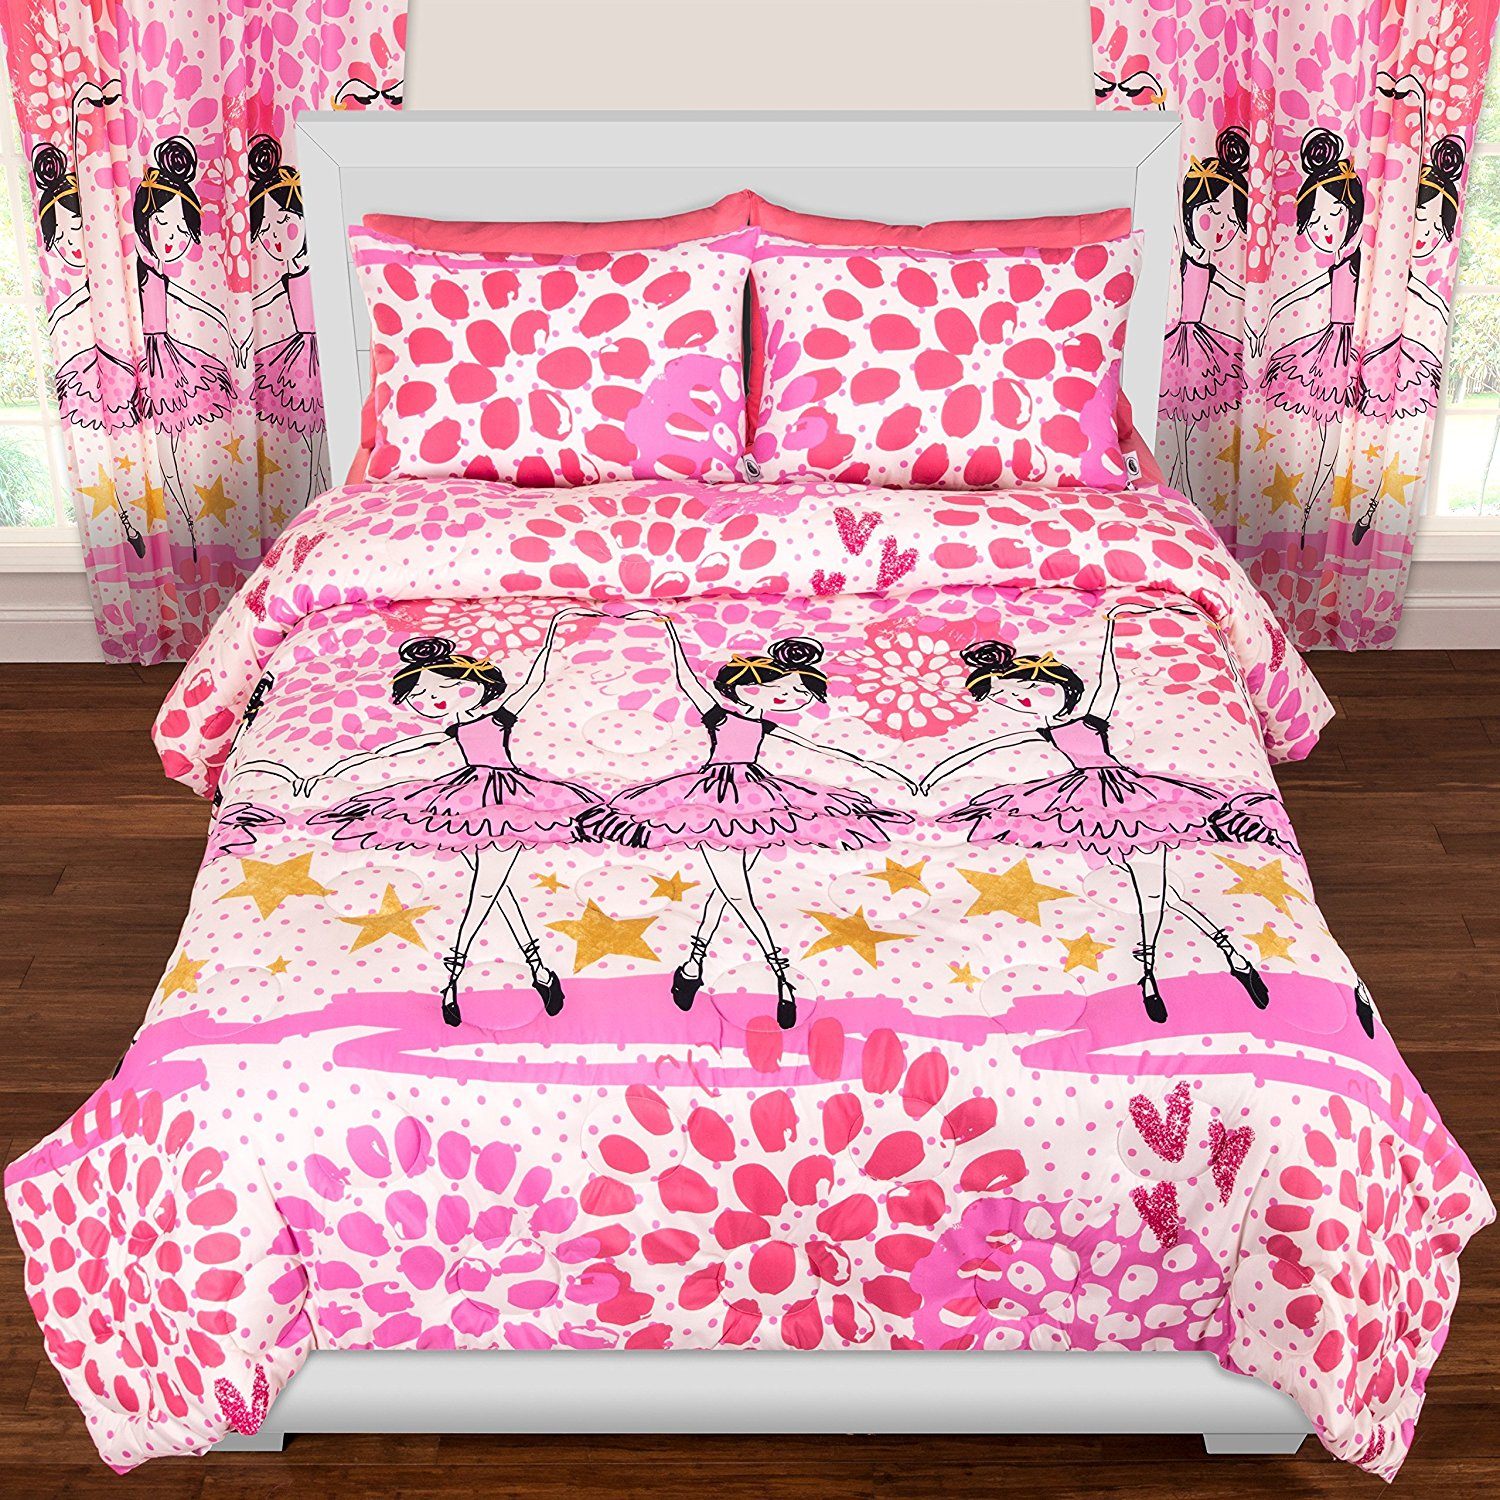 Buy 5 Piece Pink Black And Brown Twin Size Bedding Bed